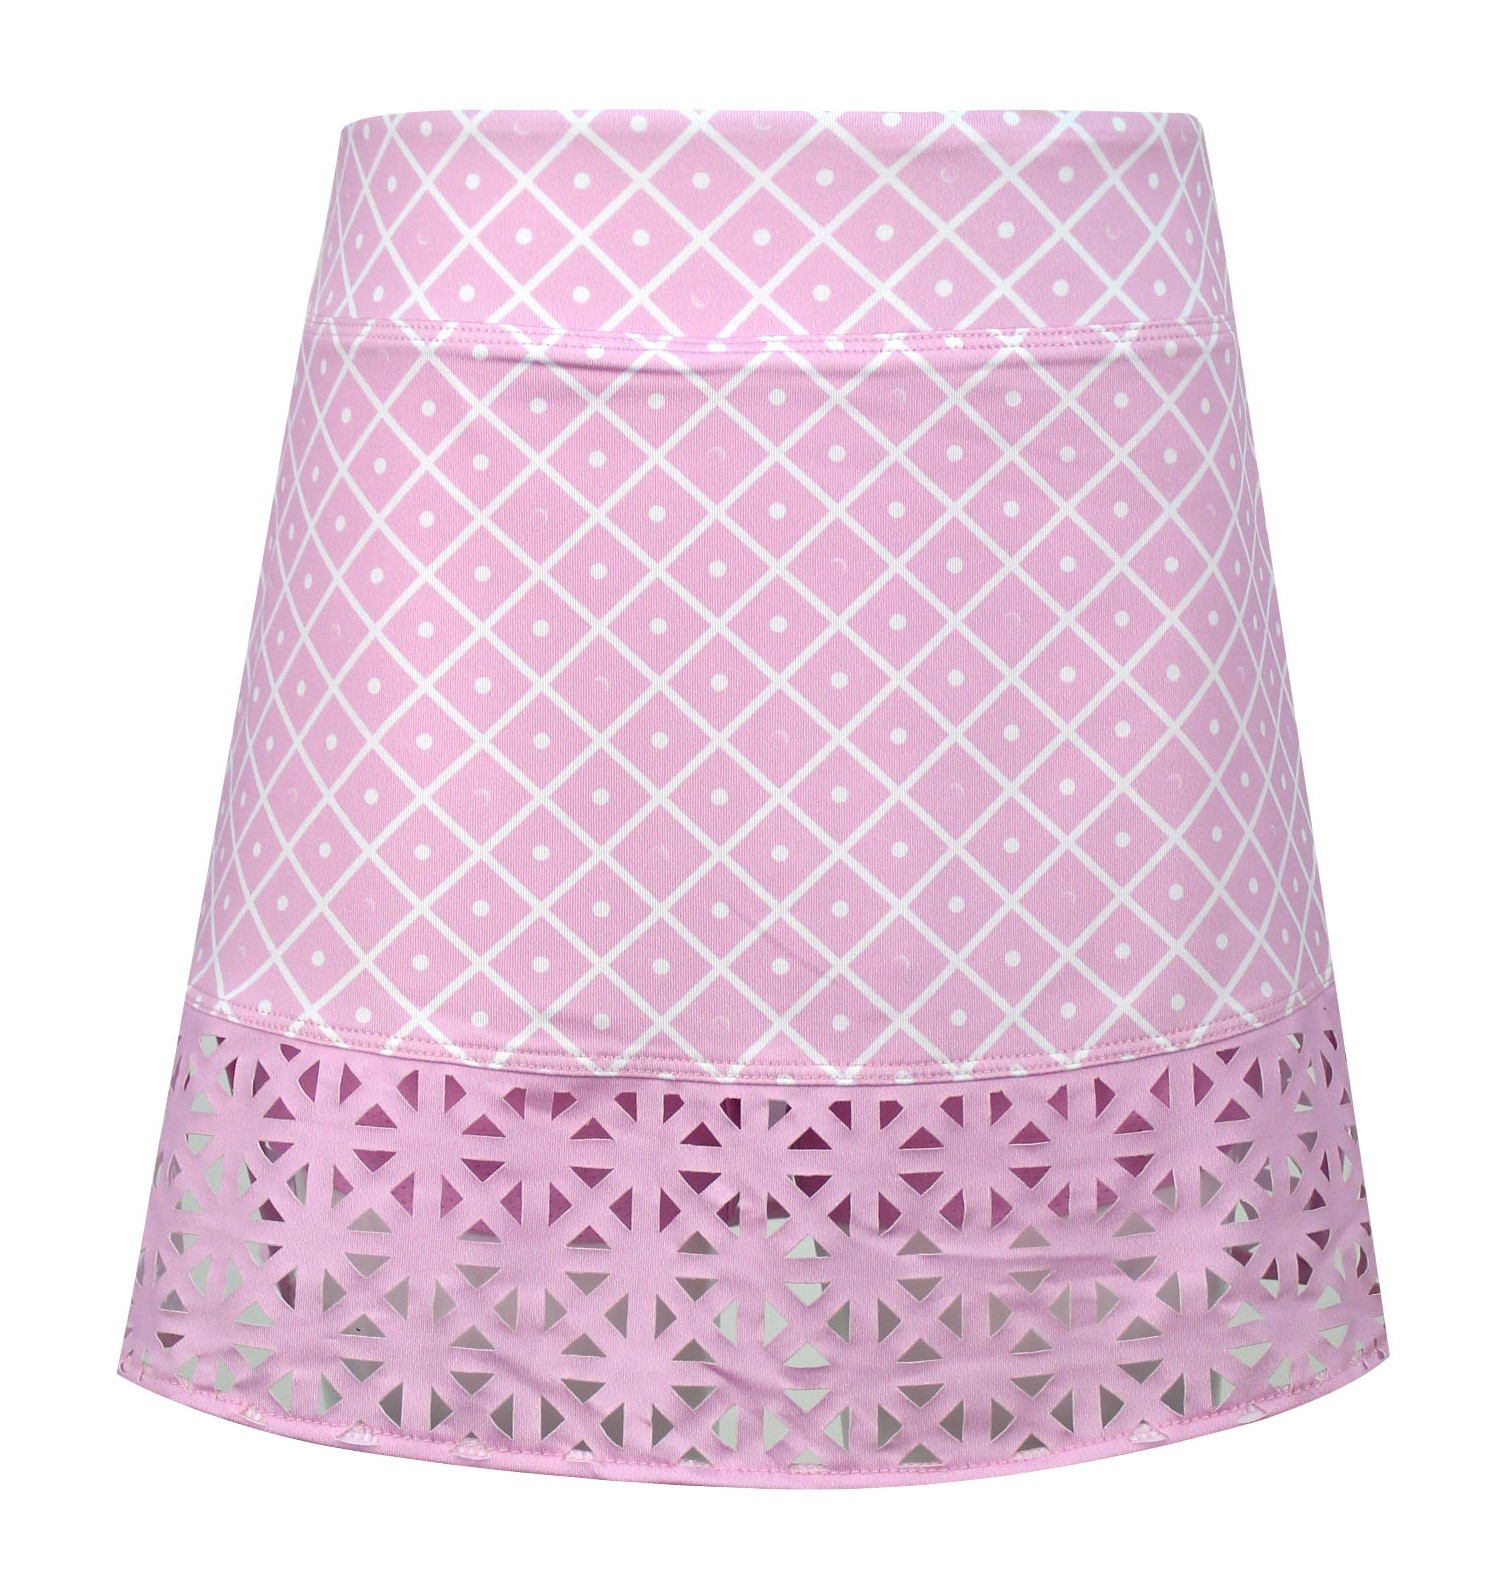 Evelyn Knit  Girls Golf & Tennis Skort In Pink Diamond On The Green Print